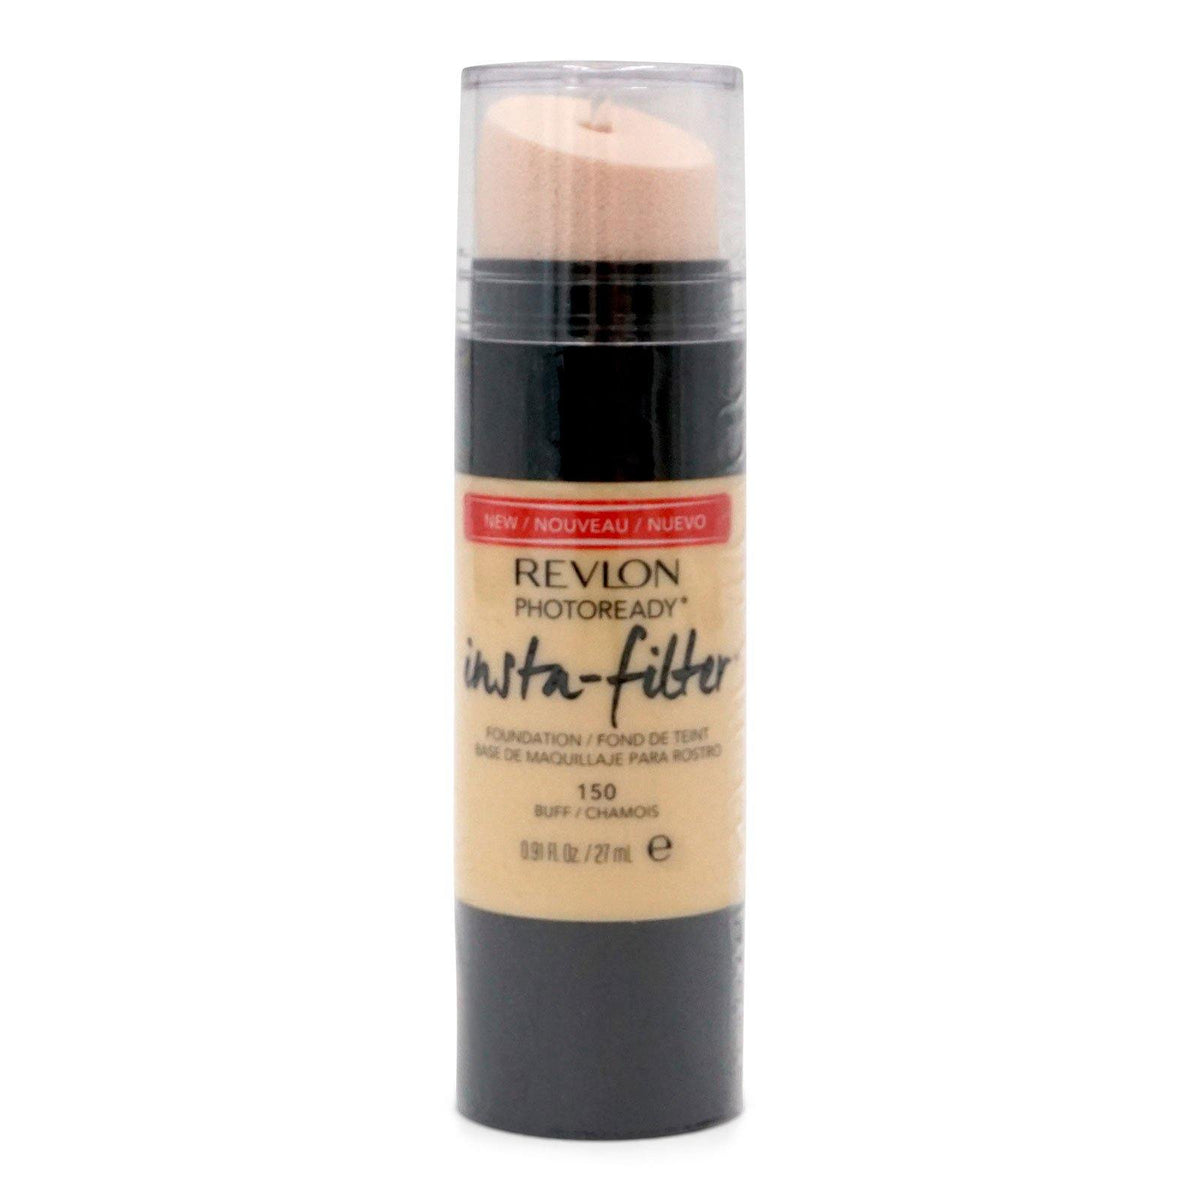 Revlon Photoready Instafix Smart Filter Foundation, Buff (24/cs)